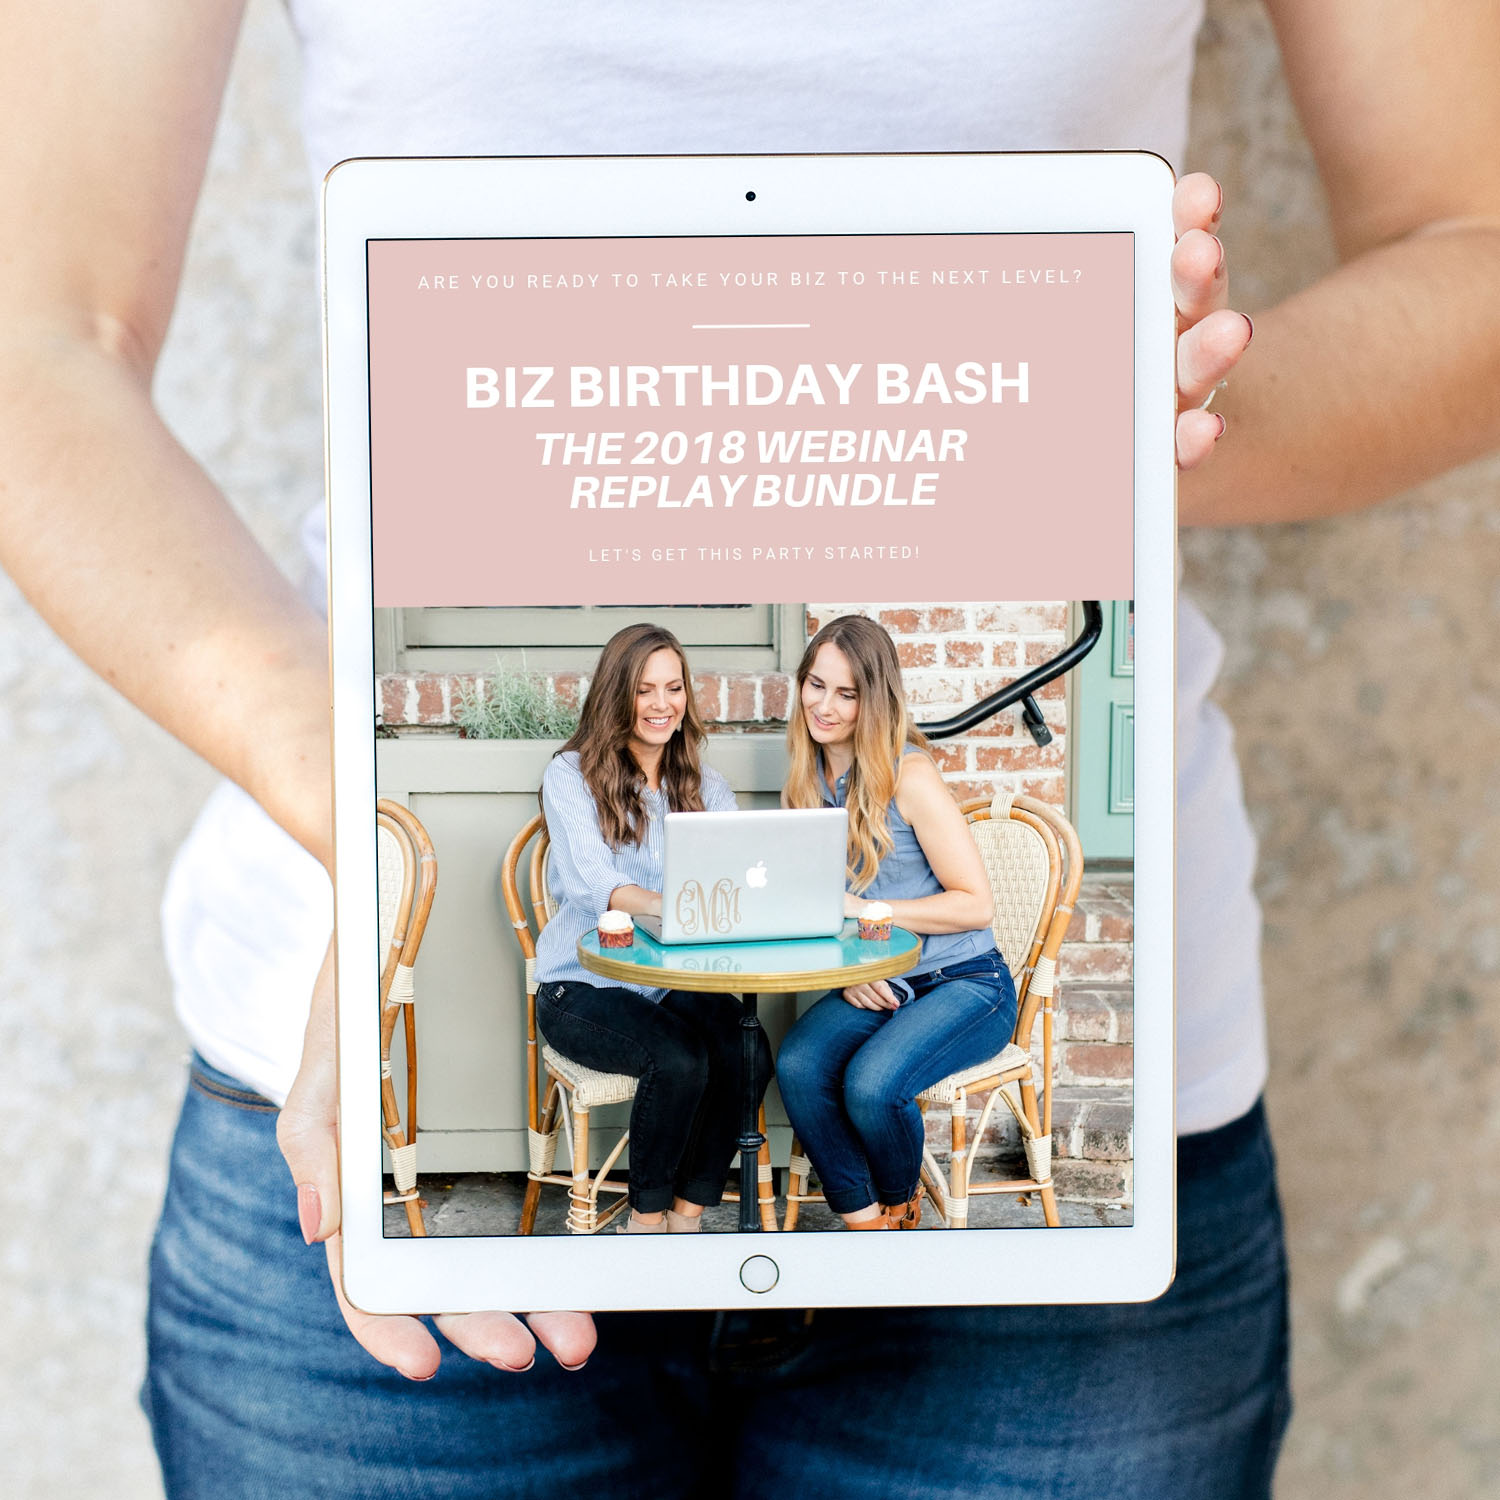 BIZ BIRTHDAY BASH - Small Business Advice for Creative Entrepreneurs! ElisaAnne Calligraphy and Cami Monet Watercolor have paired up to bring you webinars full of no-fluff info and real-life details to guide you through owning your own business.